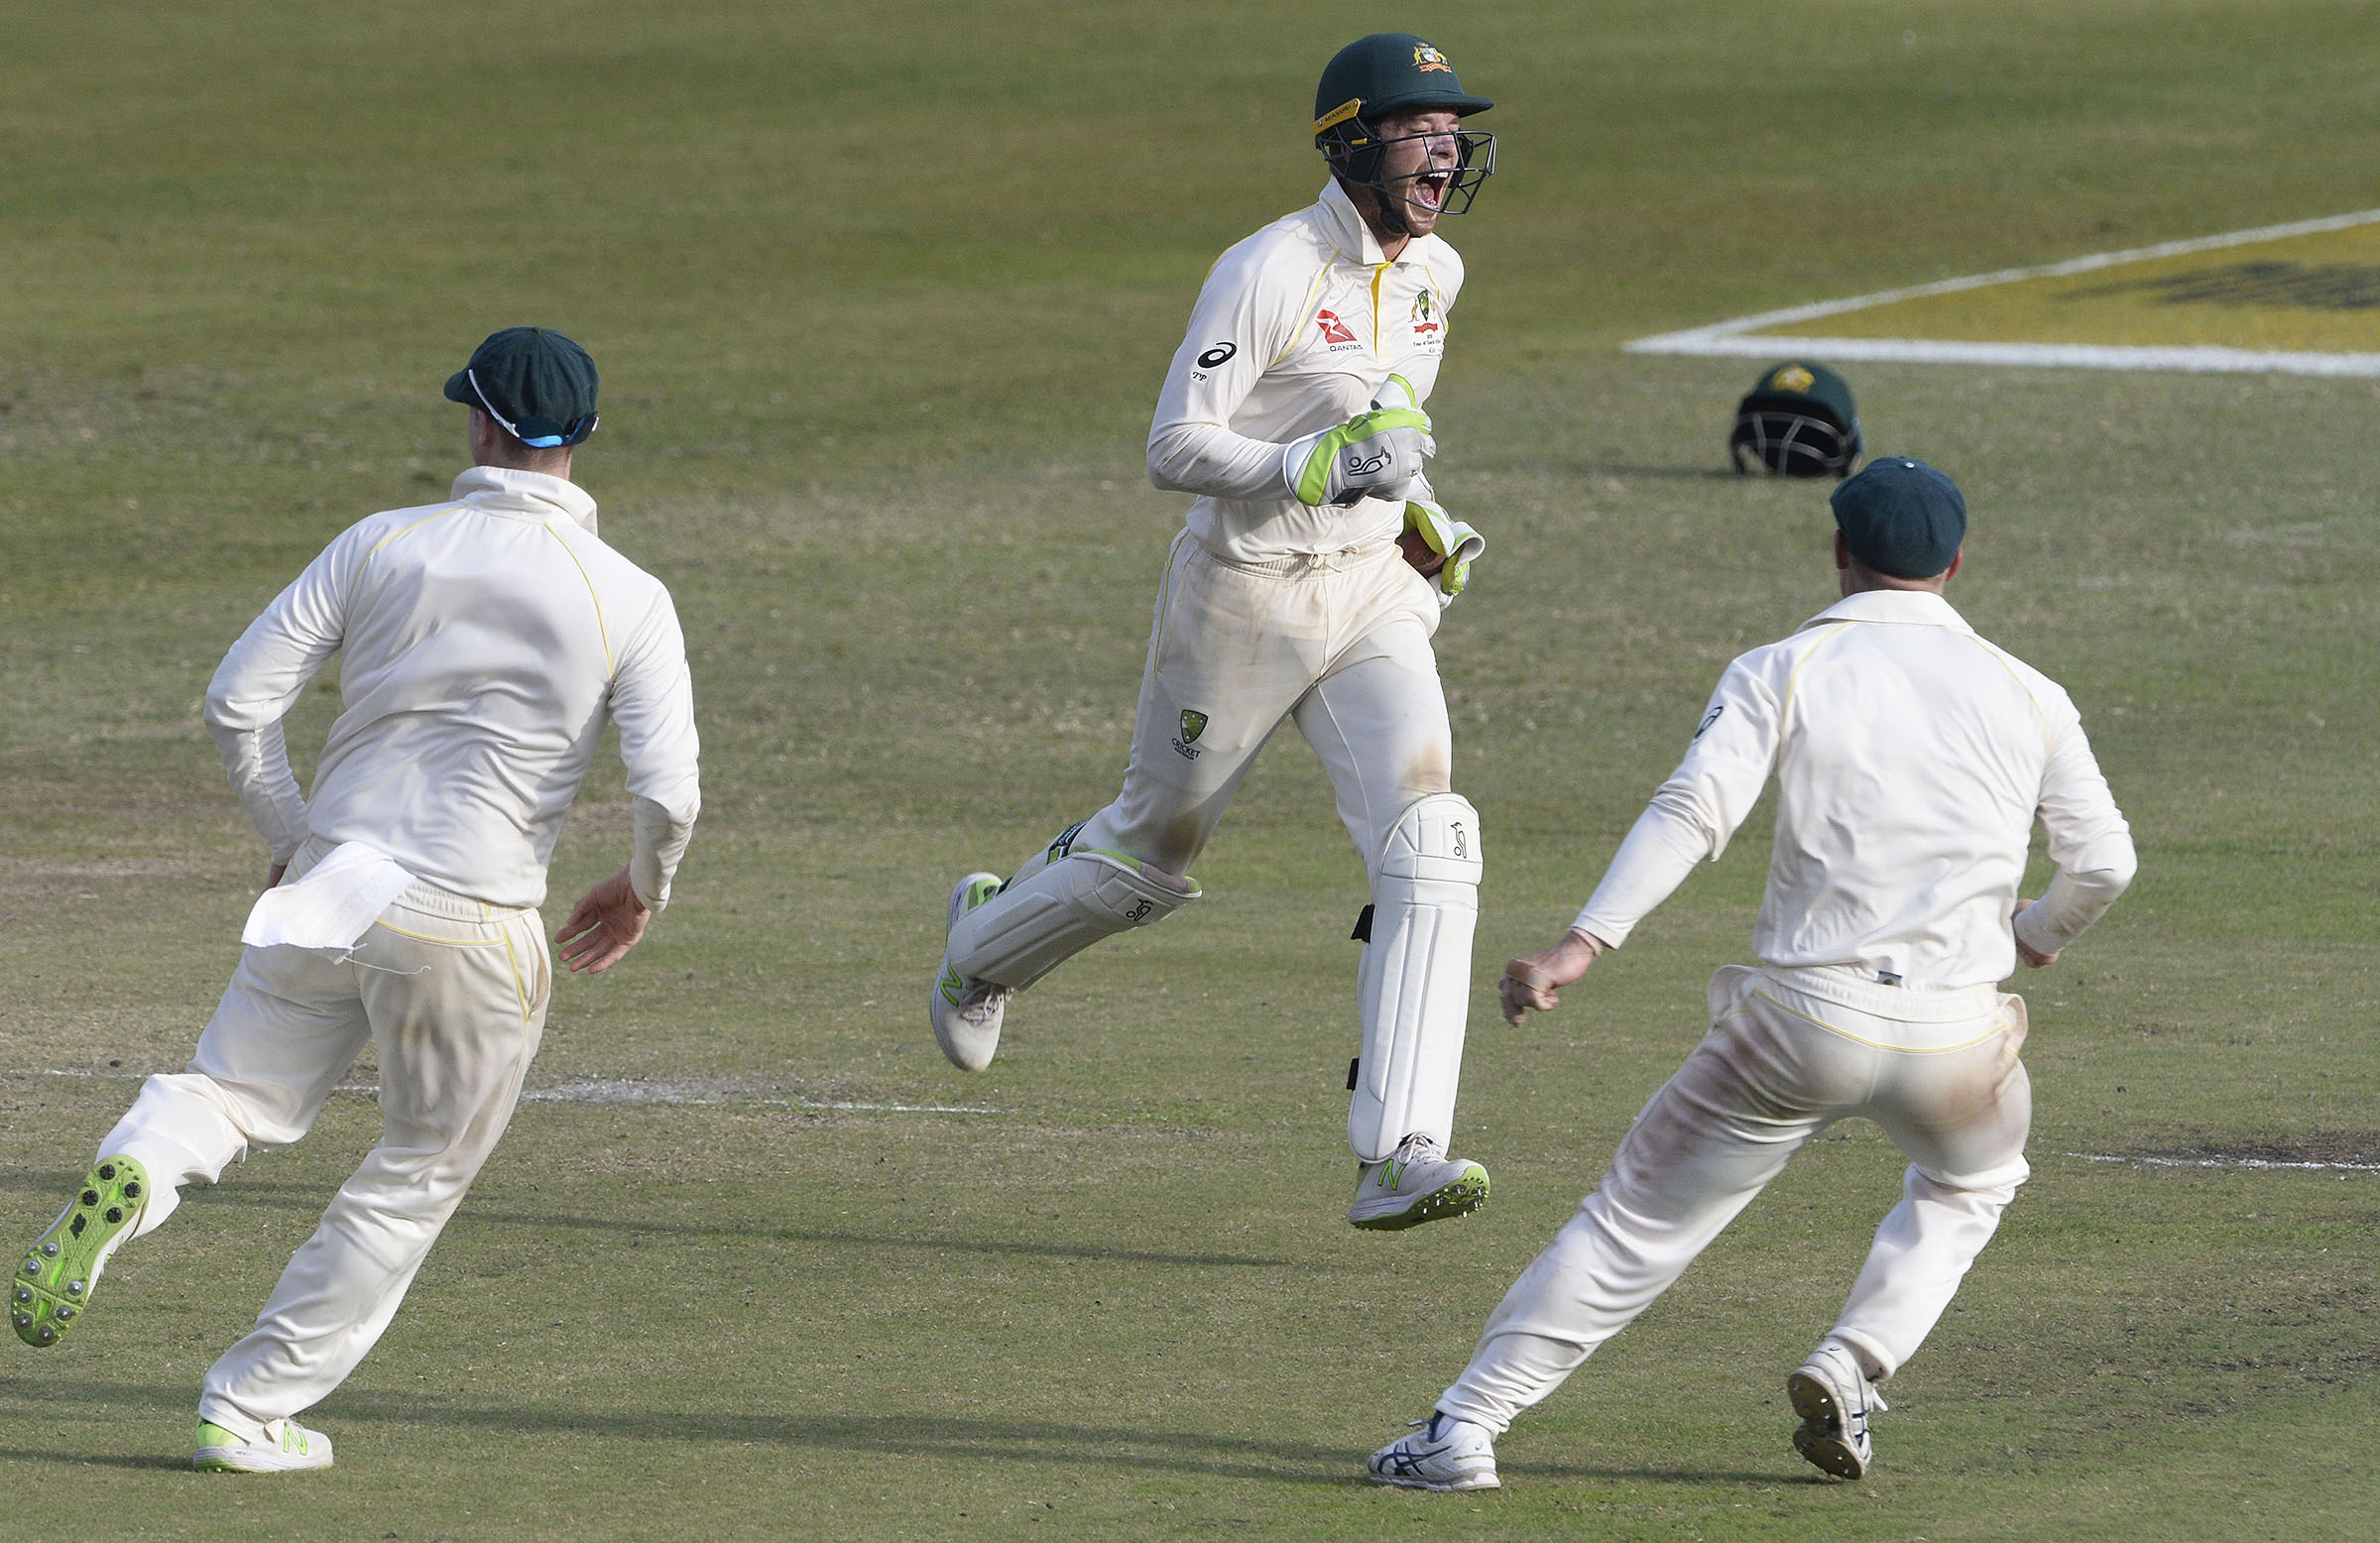 Paine celebrates a catch at Kingsmead in the first Test // Getty